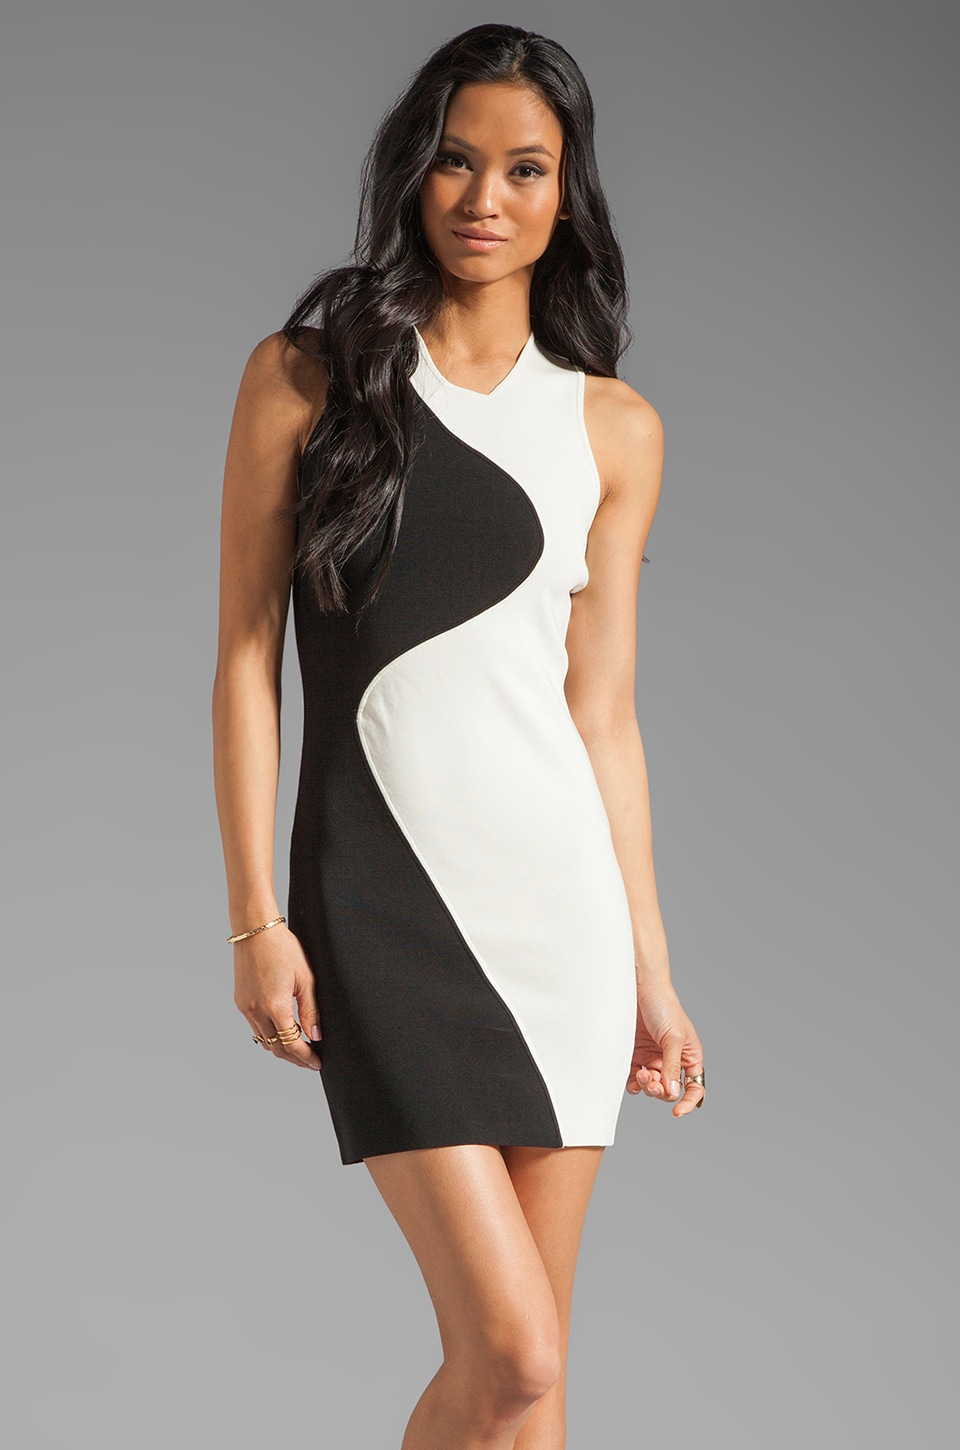 Parker Ying Yang Dress in Ivory/Black